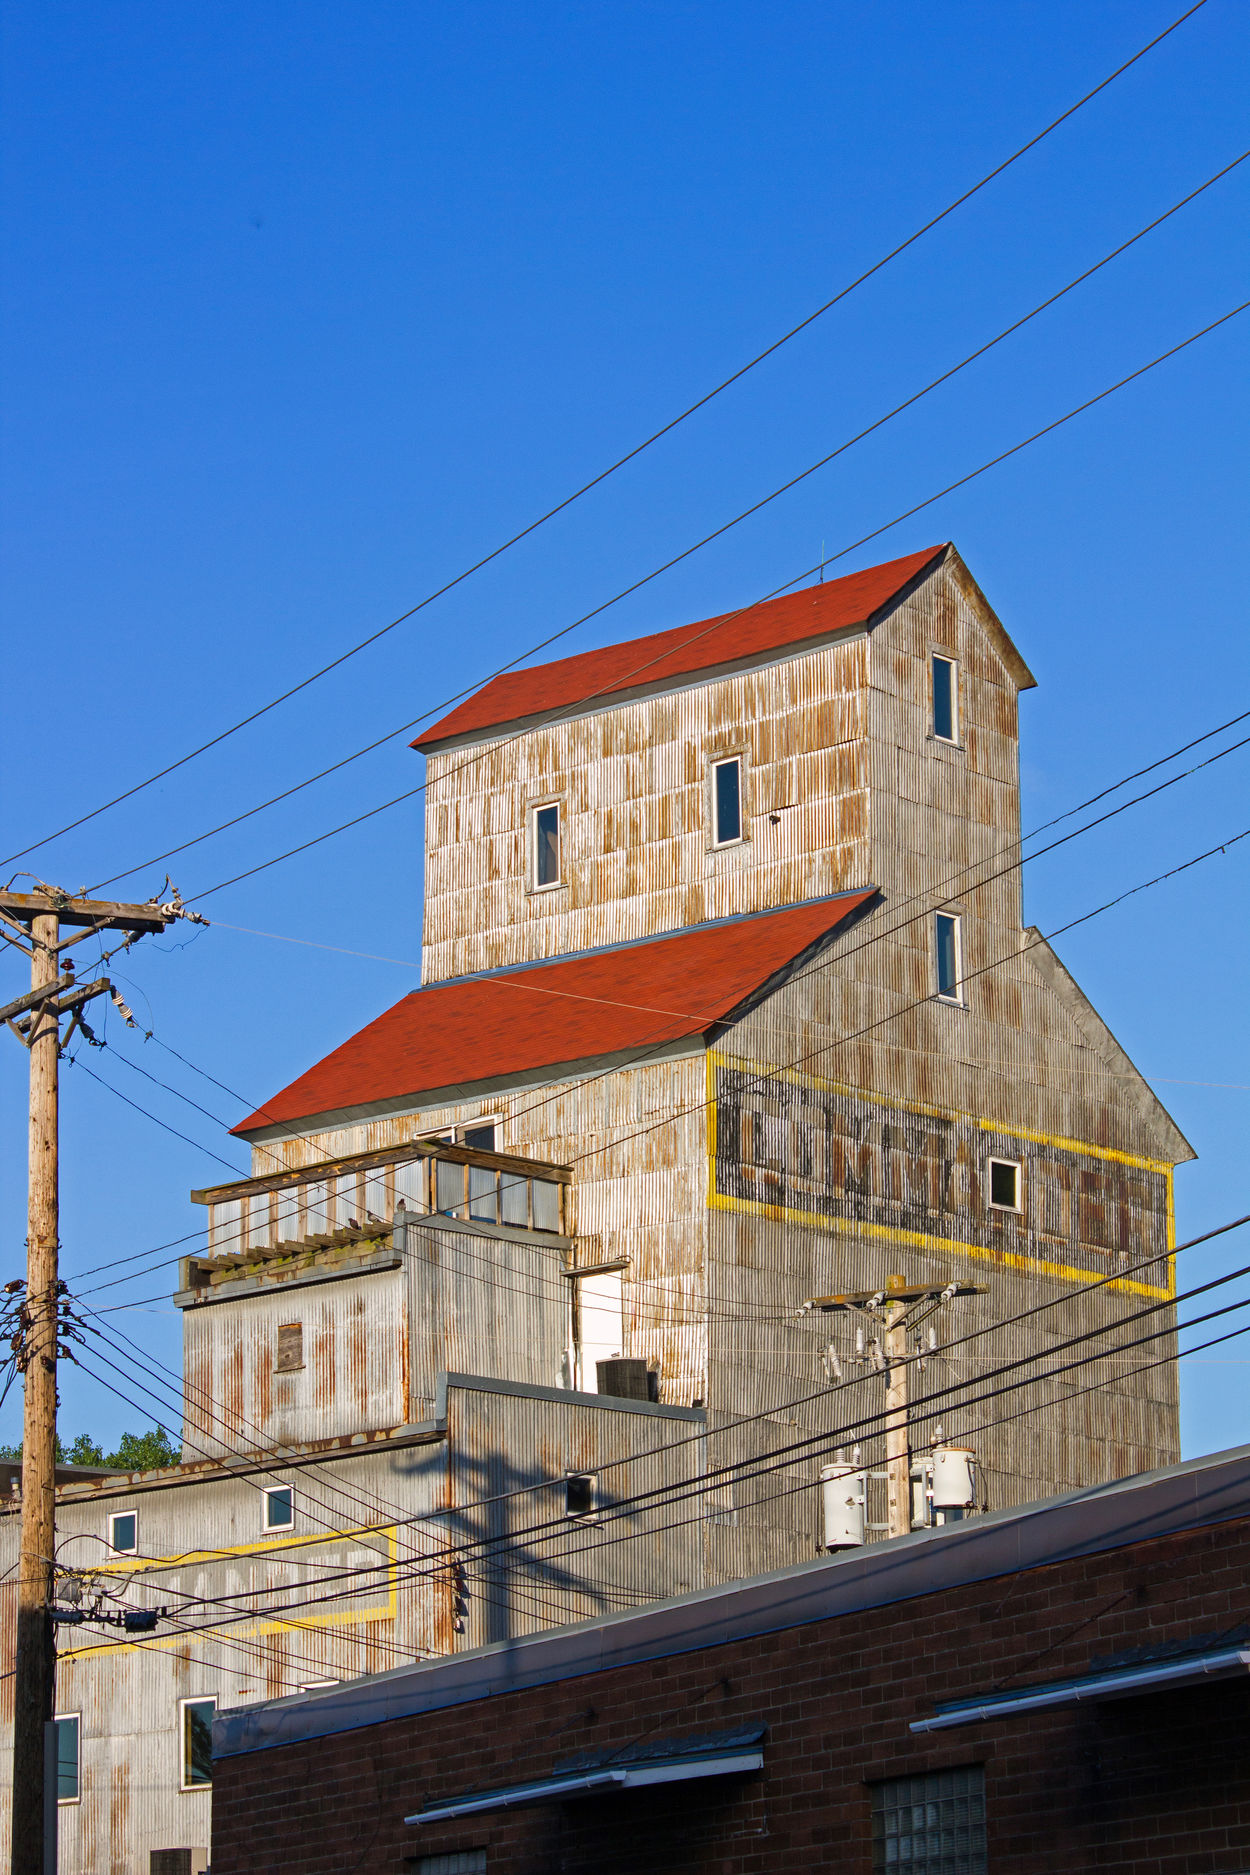 Commander grain elevator in Stillwater, Minnesota Architecture Blue Building Exterior Built Structure Cable Clear Sky Connection Day Electricity  Electricity Pylon Low Angle View No People Old Grain Elevator Outdoors Power Line  Power Supply Red Roof On Grain Elevator Sky Technology Telephone Line